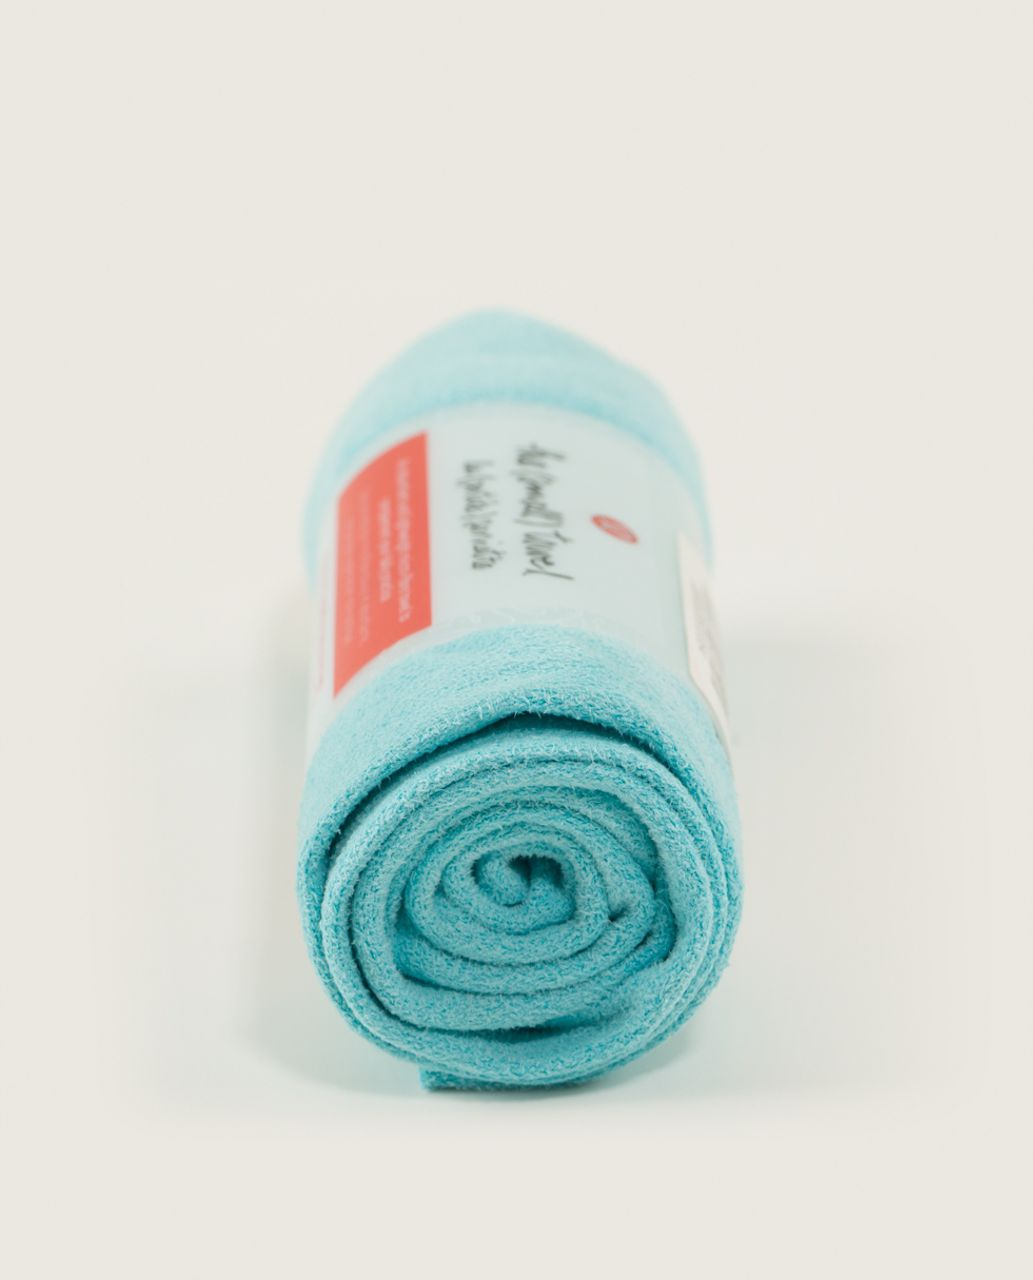 Lululemon The (Small) Towel - Angel Blue